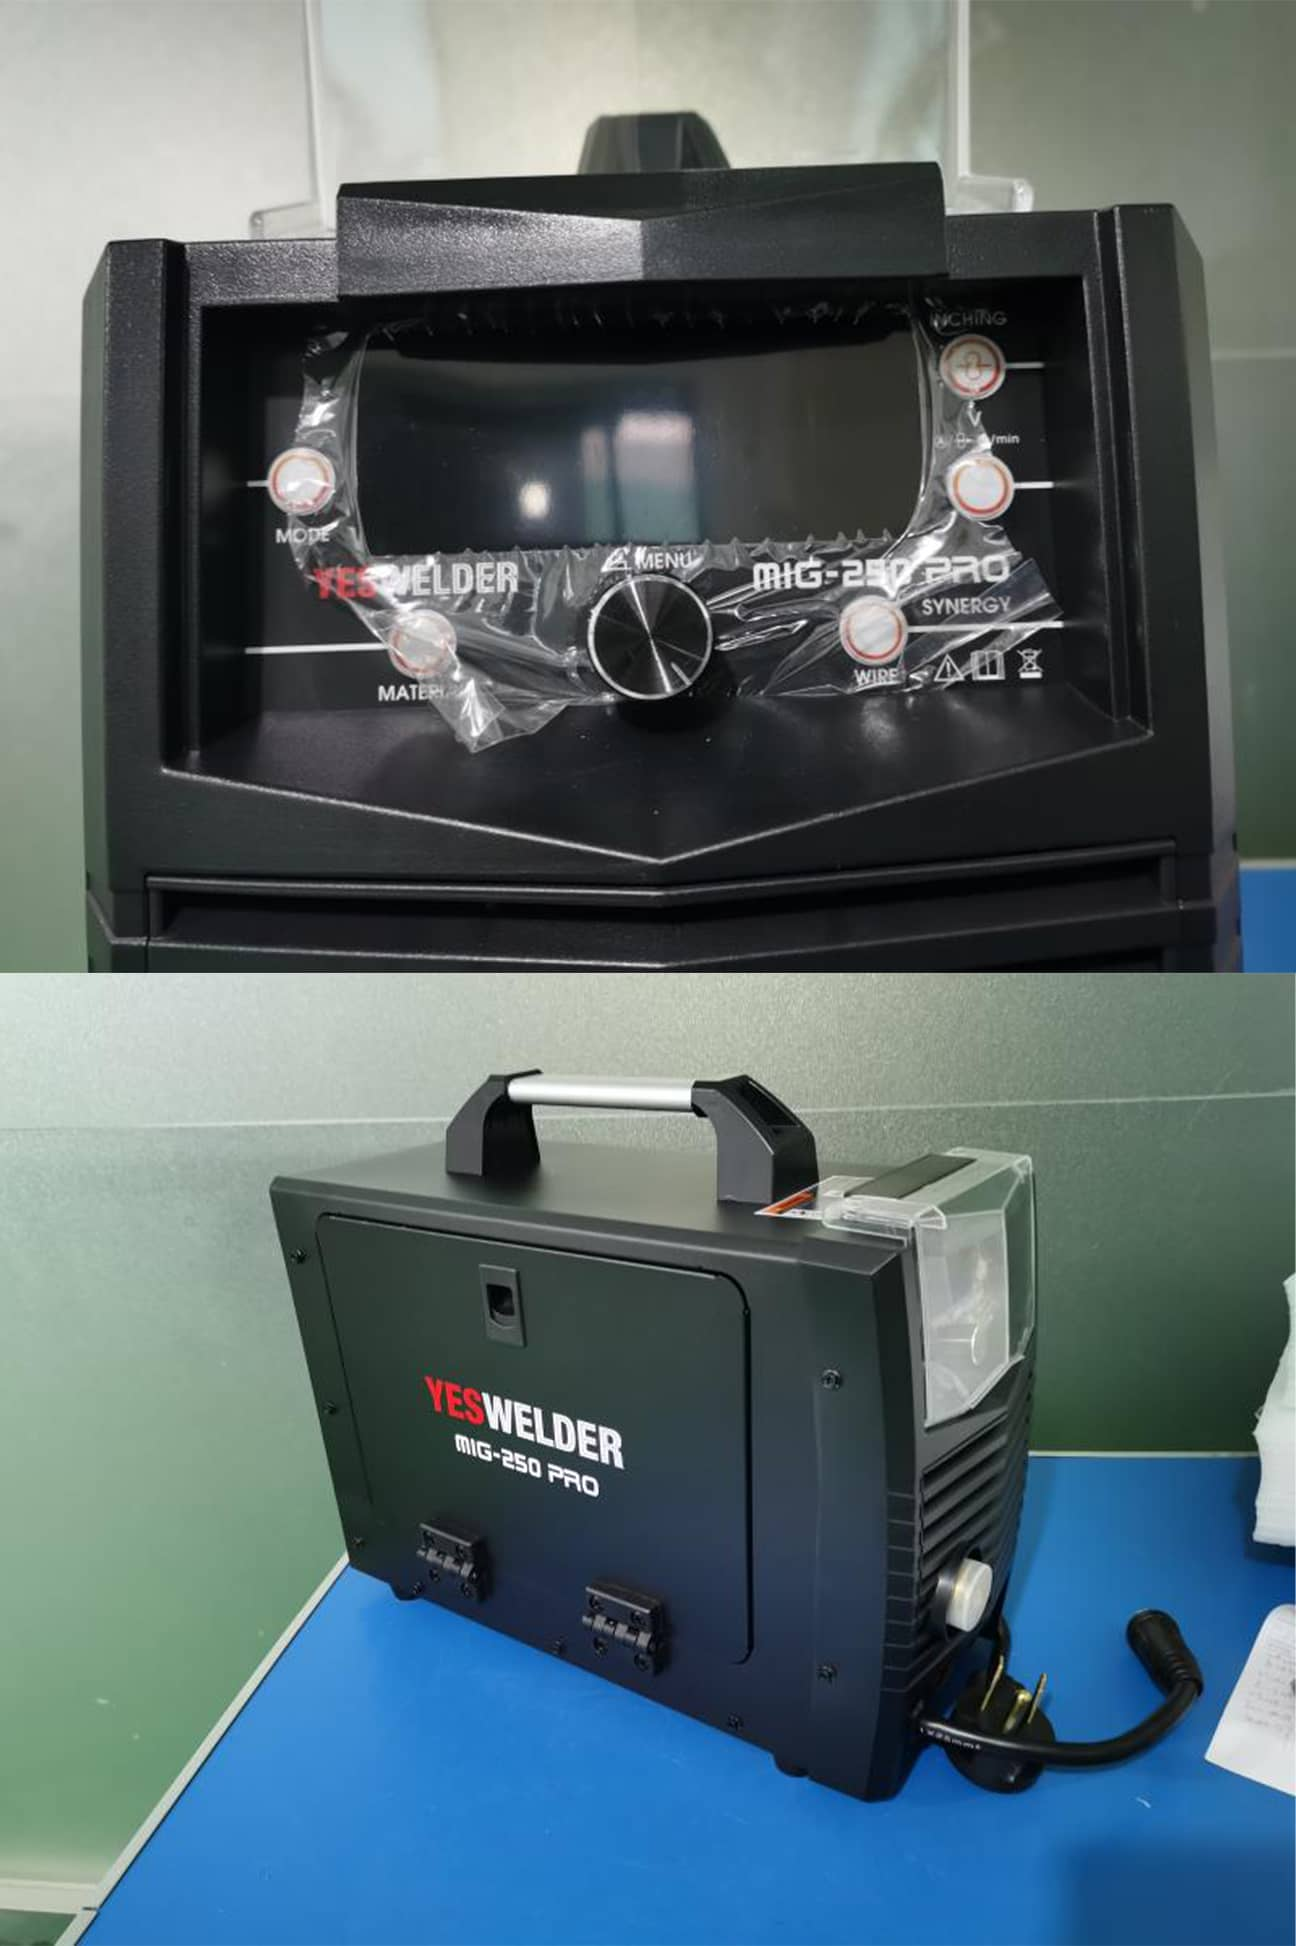 YesWelder MIG PRo 250A side and front panel